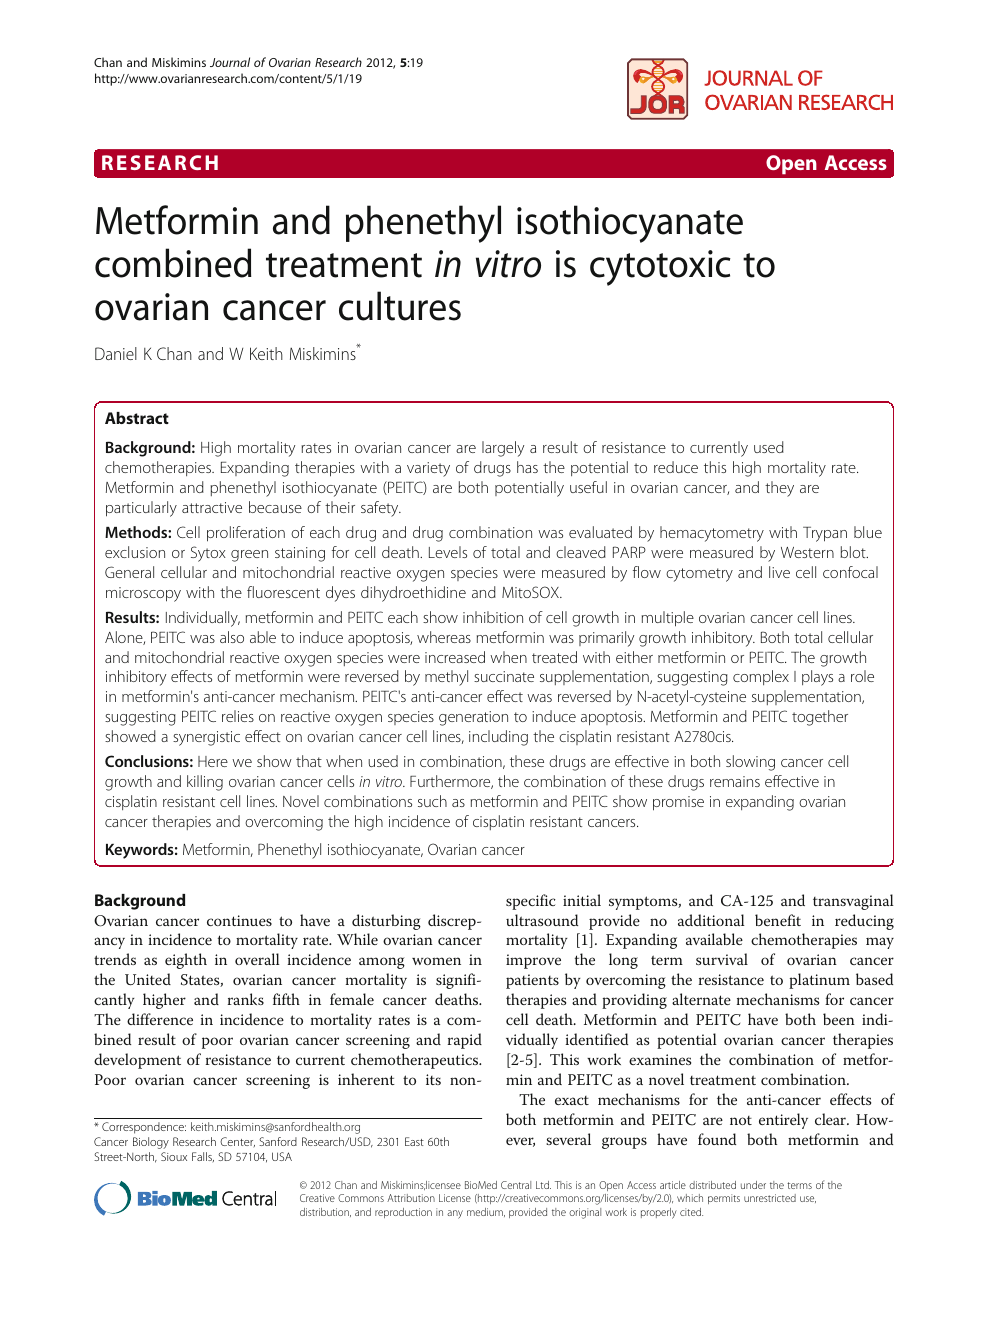 Metformin And Phenethyl Isothiocyanate Combined Treatment In Vitro Is Cytotoxic To Ovarian Cancer Cultures Topic Of Research Paper In Biological Sciences Download Scholarly Article Pdf And Read For Free On Cyberleninka